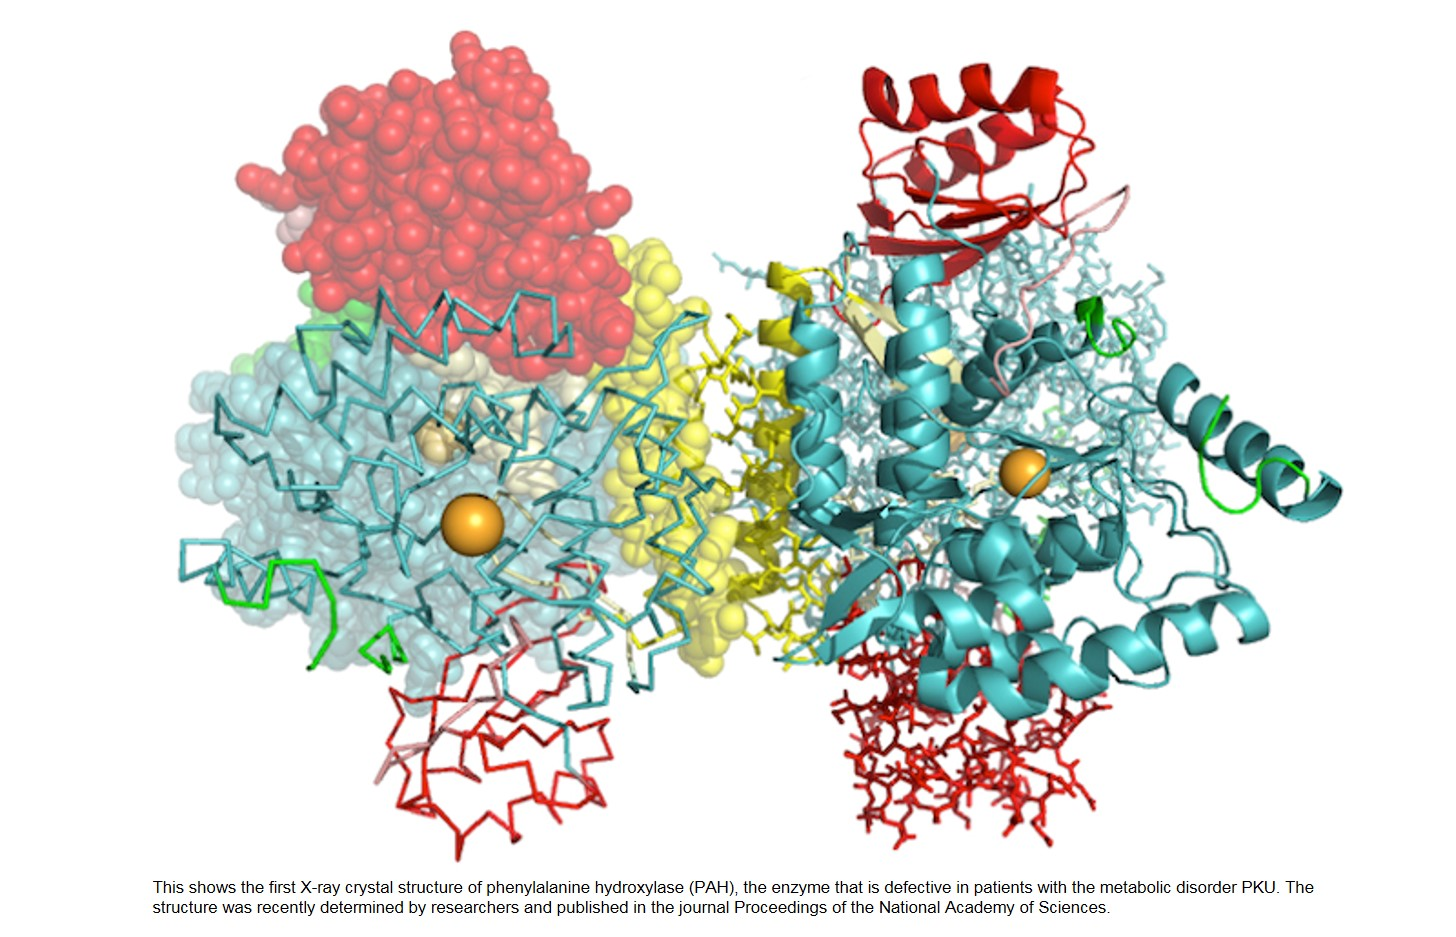 Solved protein structure of phenylalanine hydroxylase (PAH) to provide clues for metabolic disorder treatment